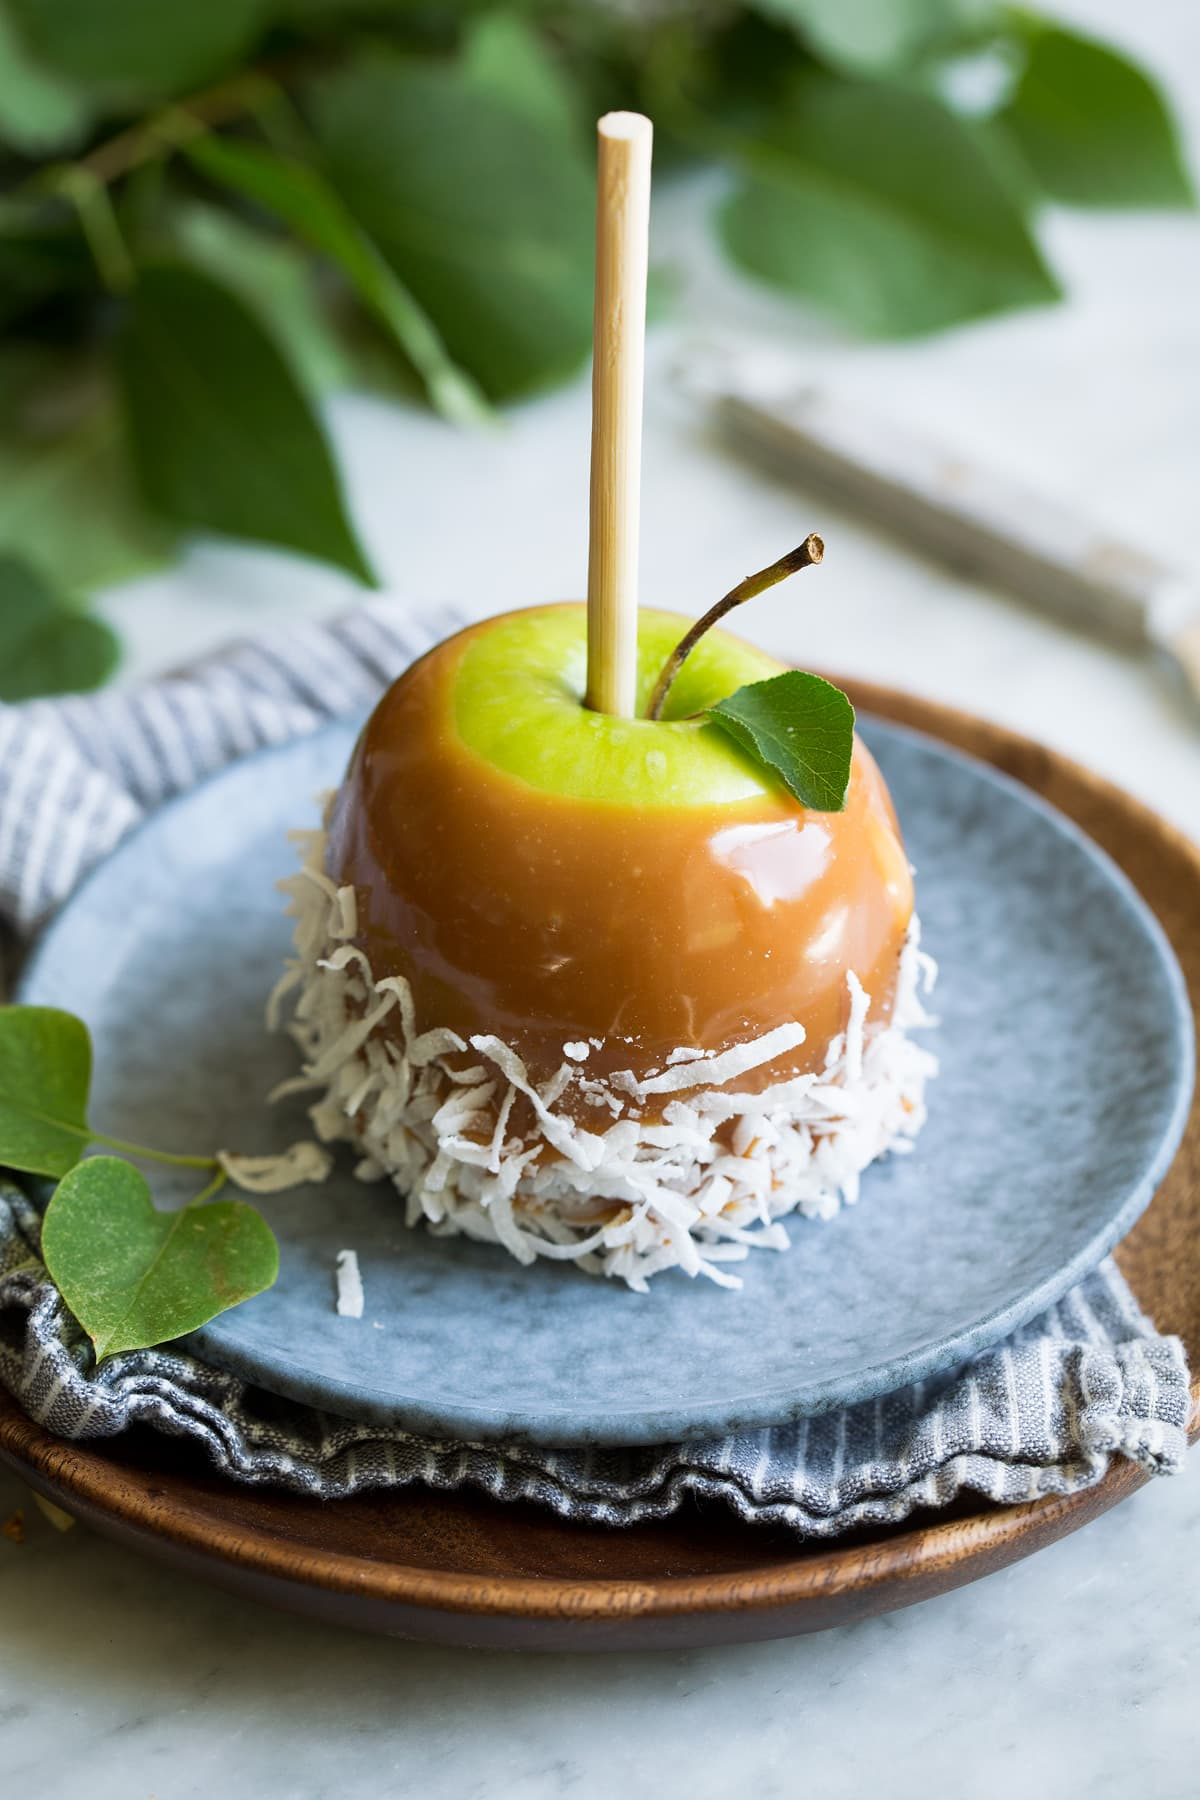 Single caramel apple rolled in shredded coconut sitting on a blue plate on top of a wooden plate.